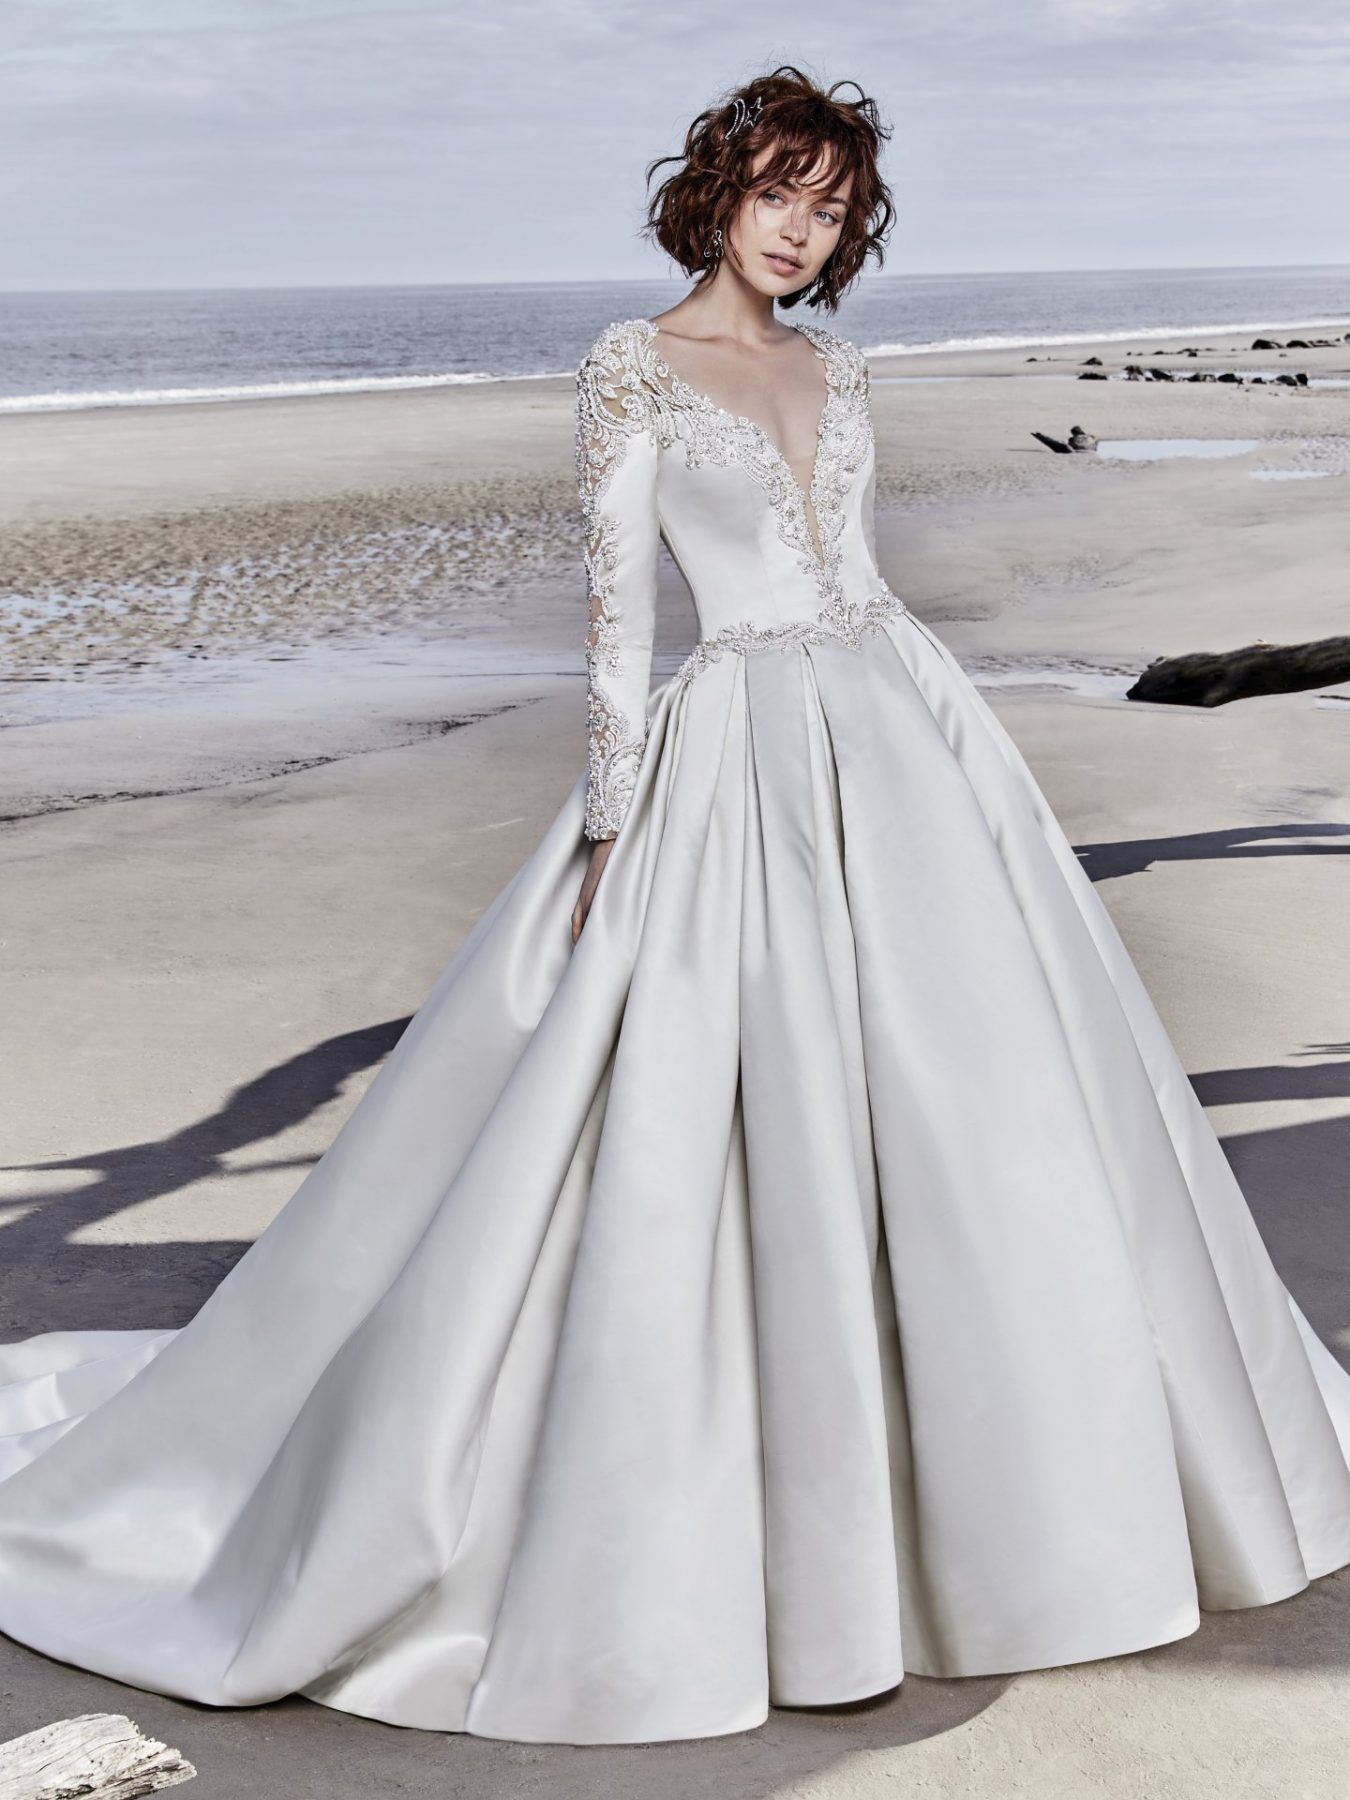 Pin By Kleinfeld Bridal On Happily Ever After Weddings Ball Gowns Wedding Wedding Dresses Lace Ballgown Ball Gown Wedding Dress